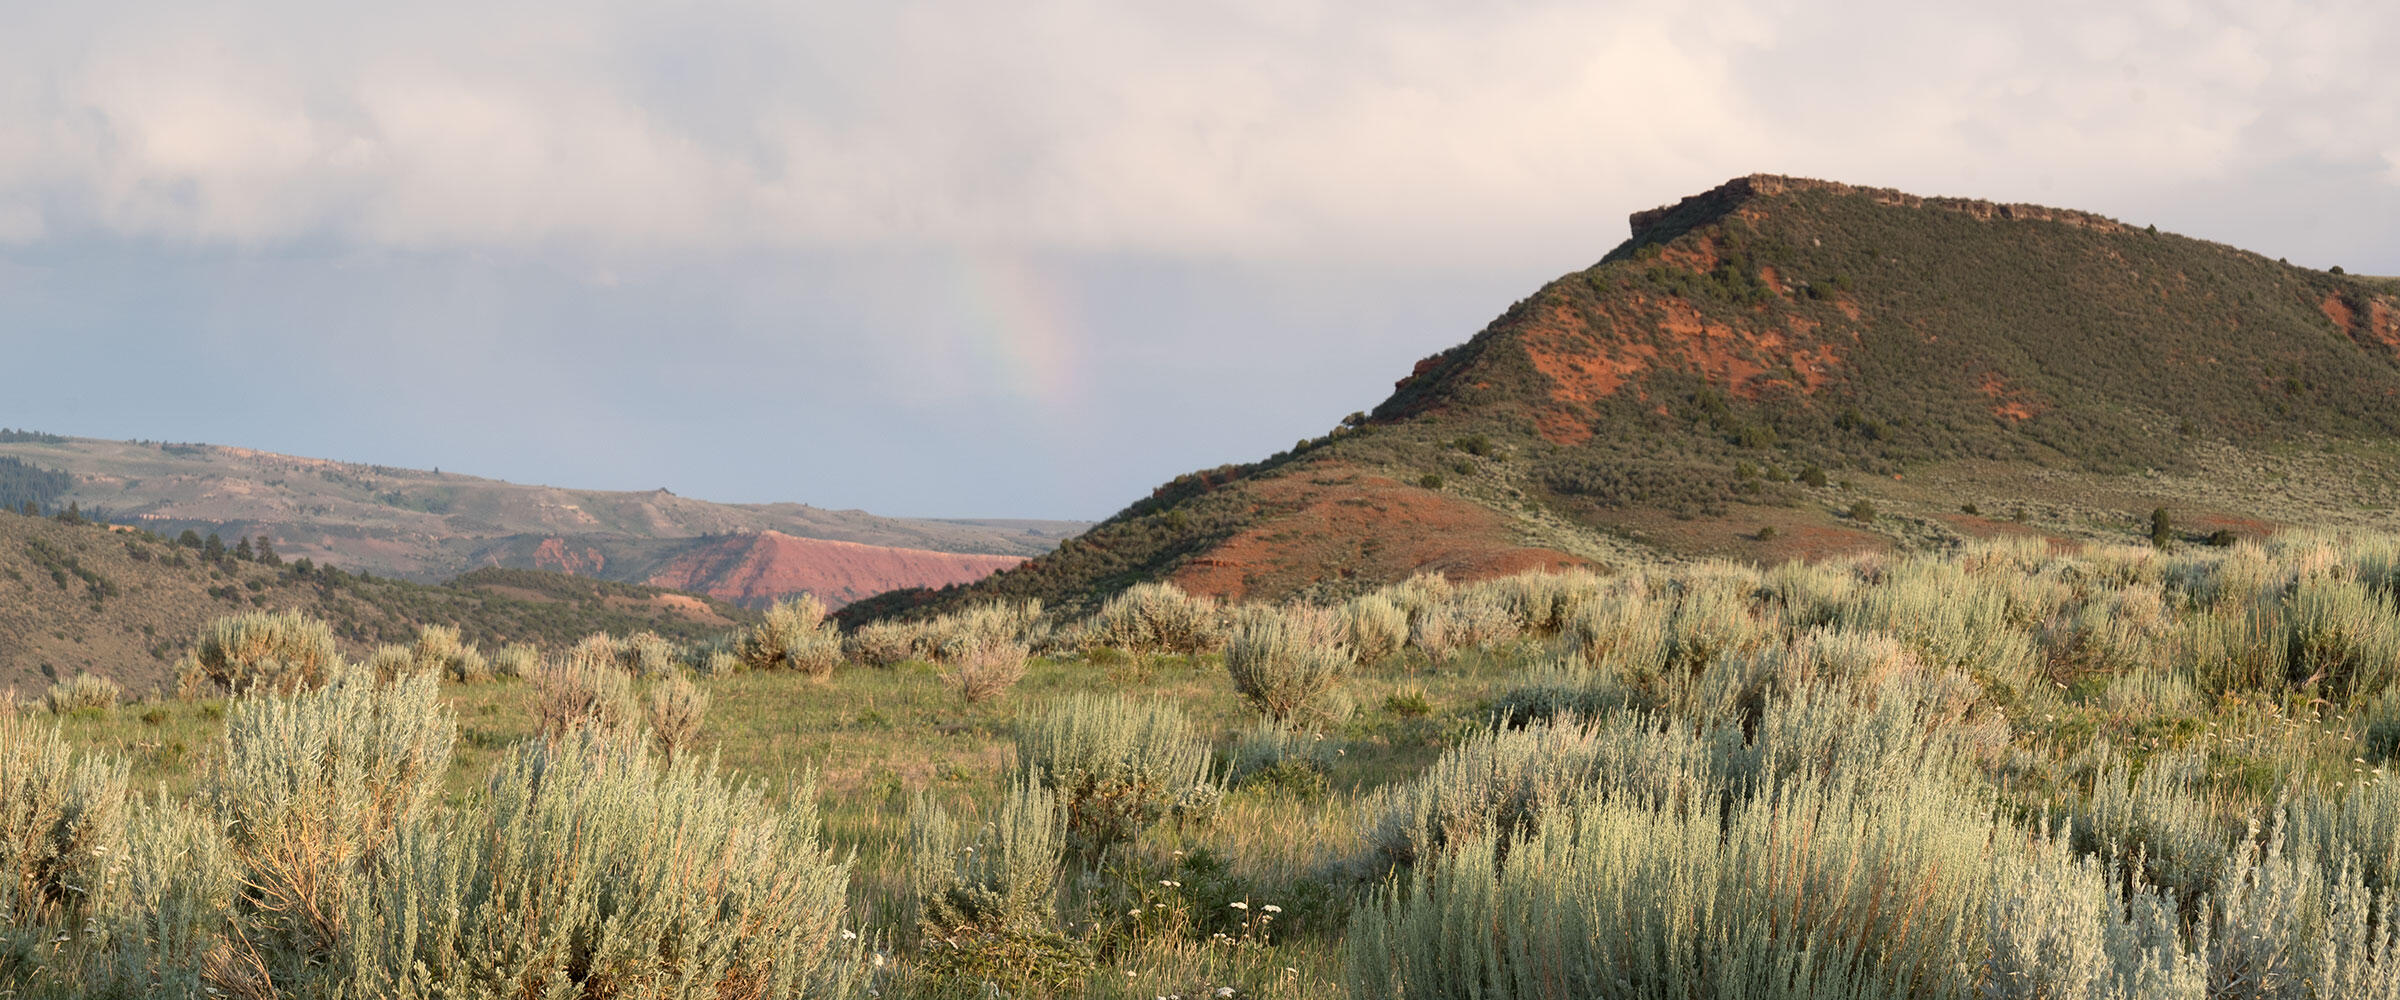 A red hill rises above sagebrush growing in a meadow.